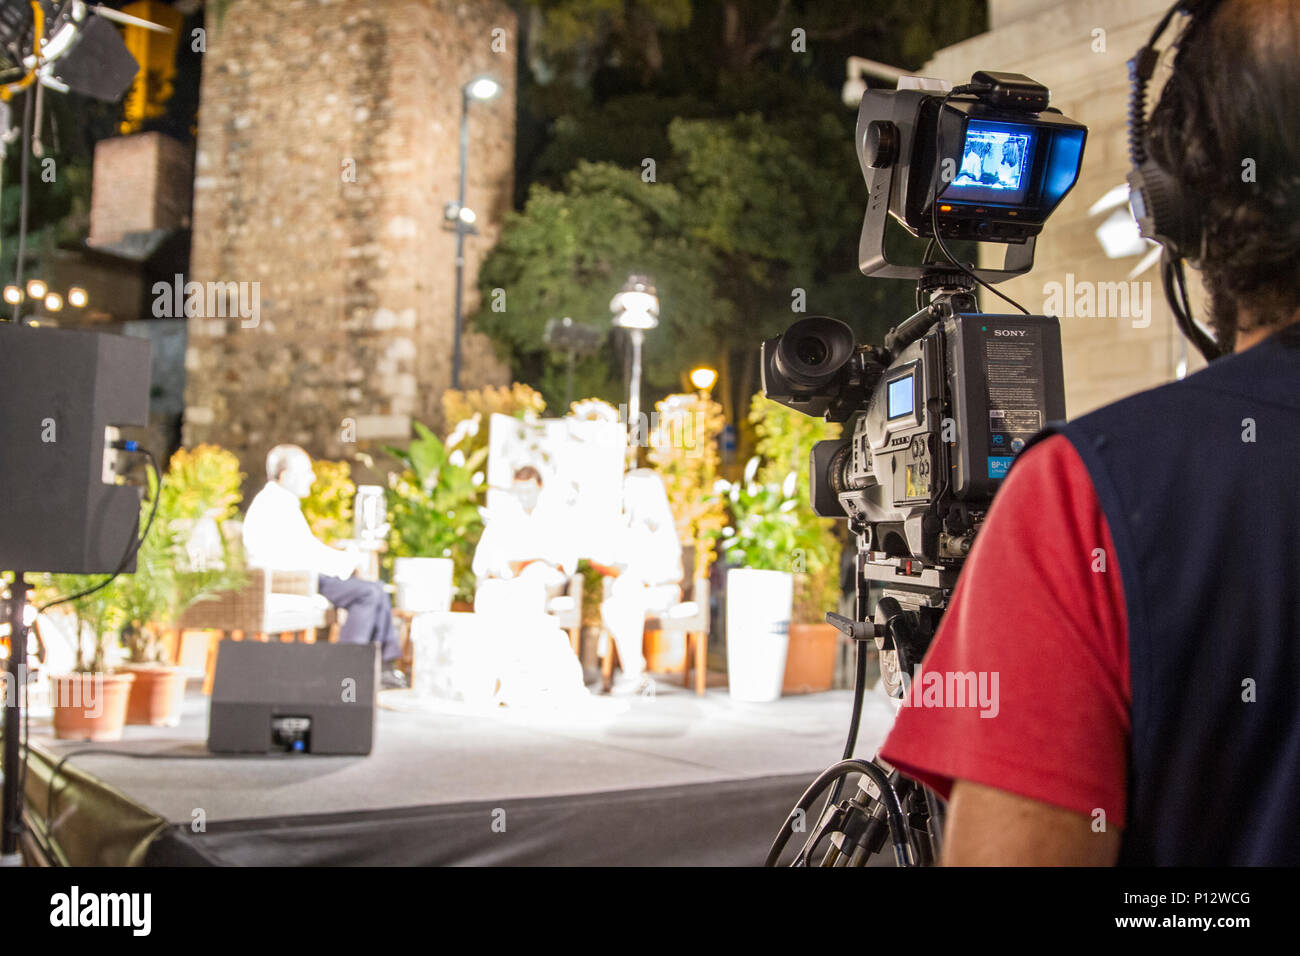 TV Talk Show Set - Camera & Production - Stock Image